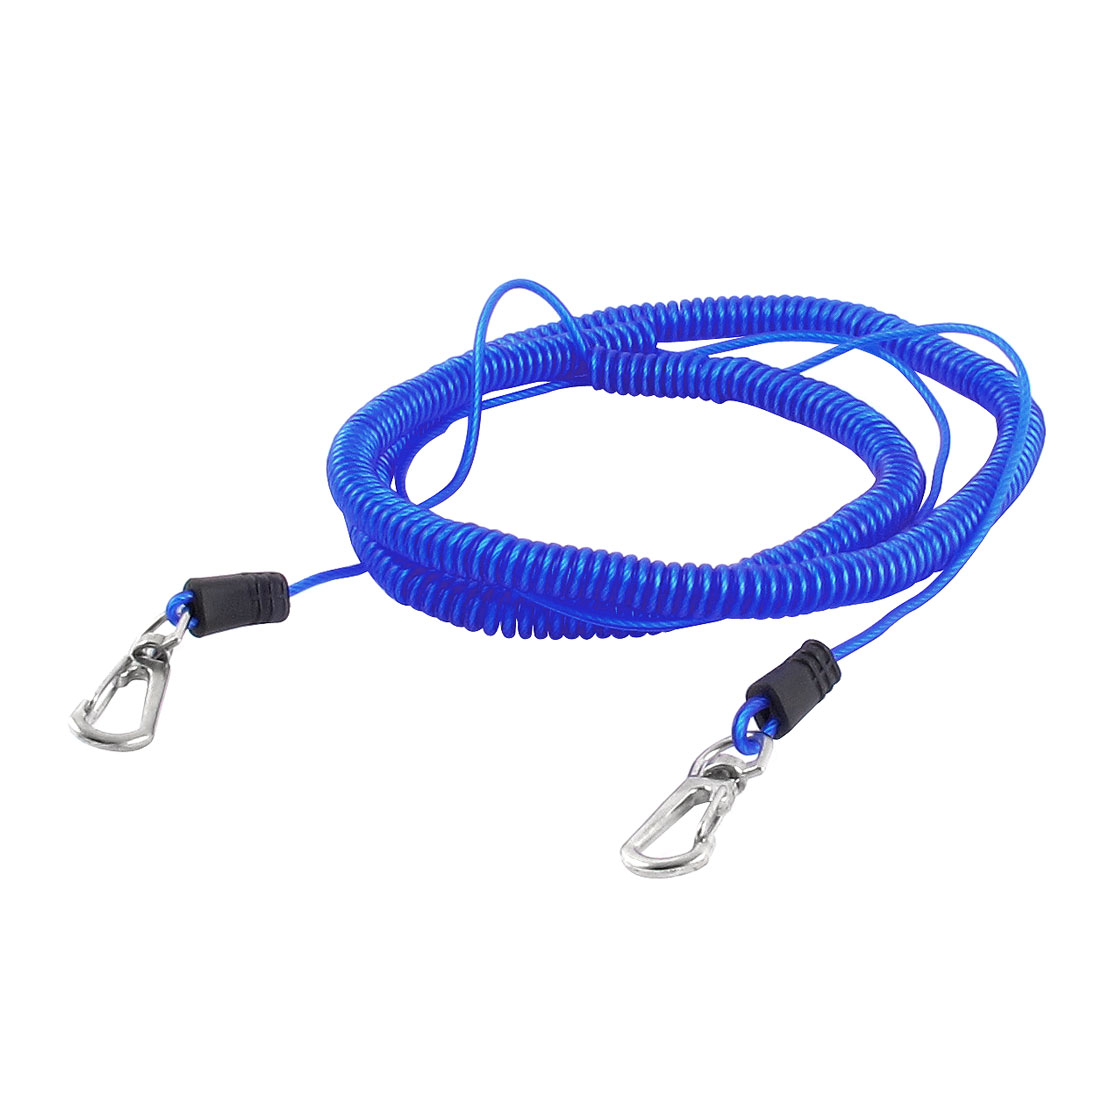 Fishing Rod Safety Lobster Clasp Stretchy Coiled Lanyard Rope Cord Blue 8M 26Ft